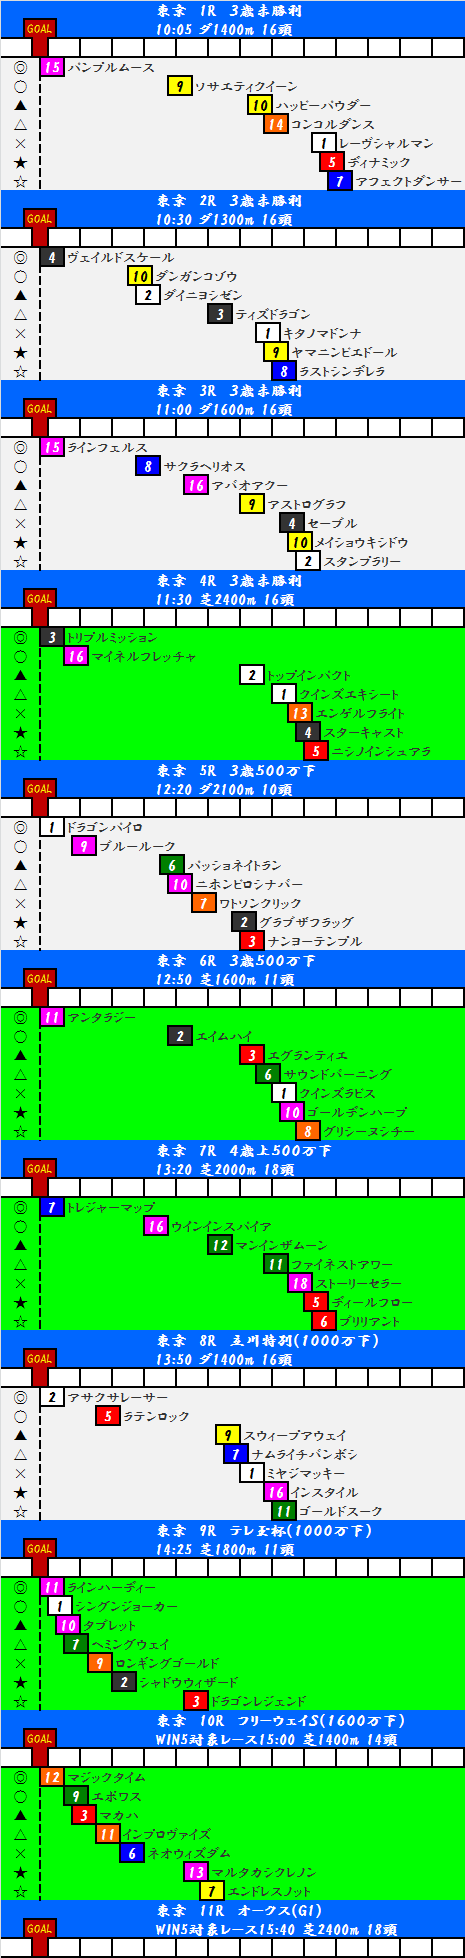 2015052401.png